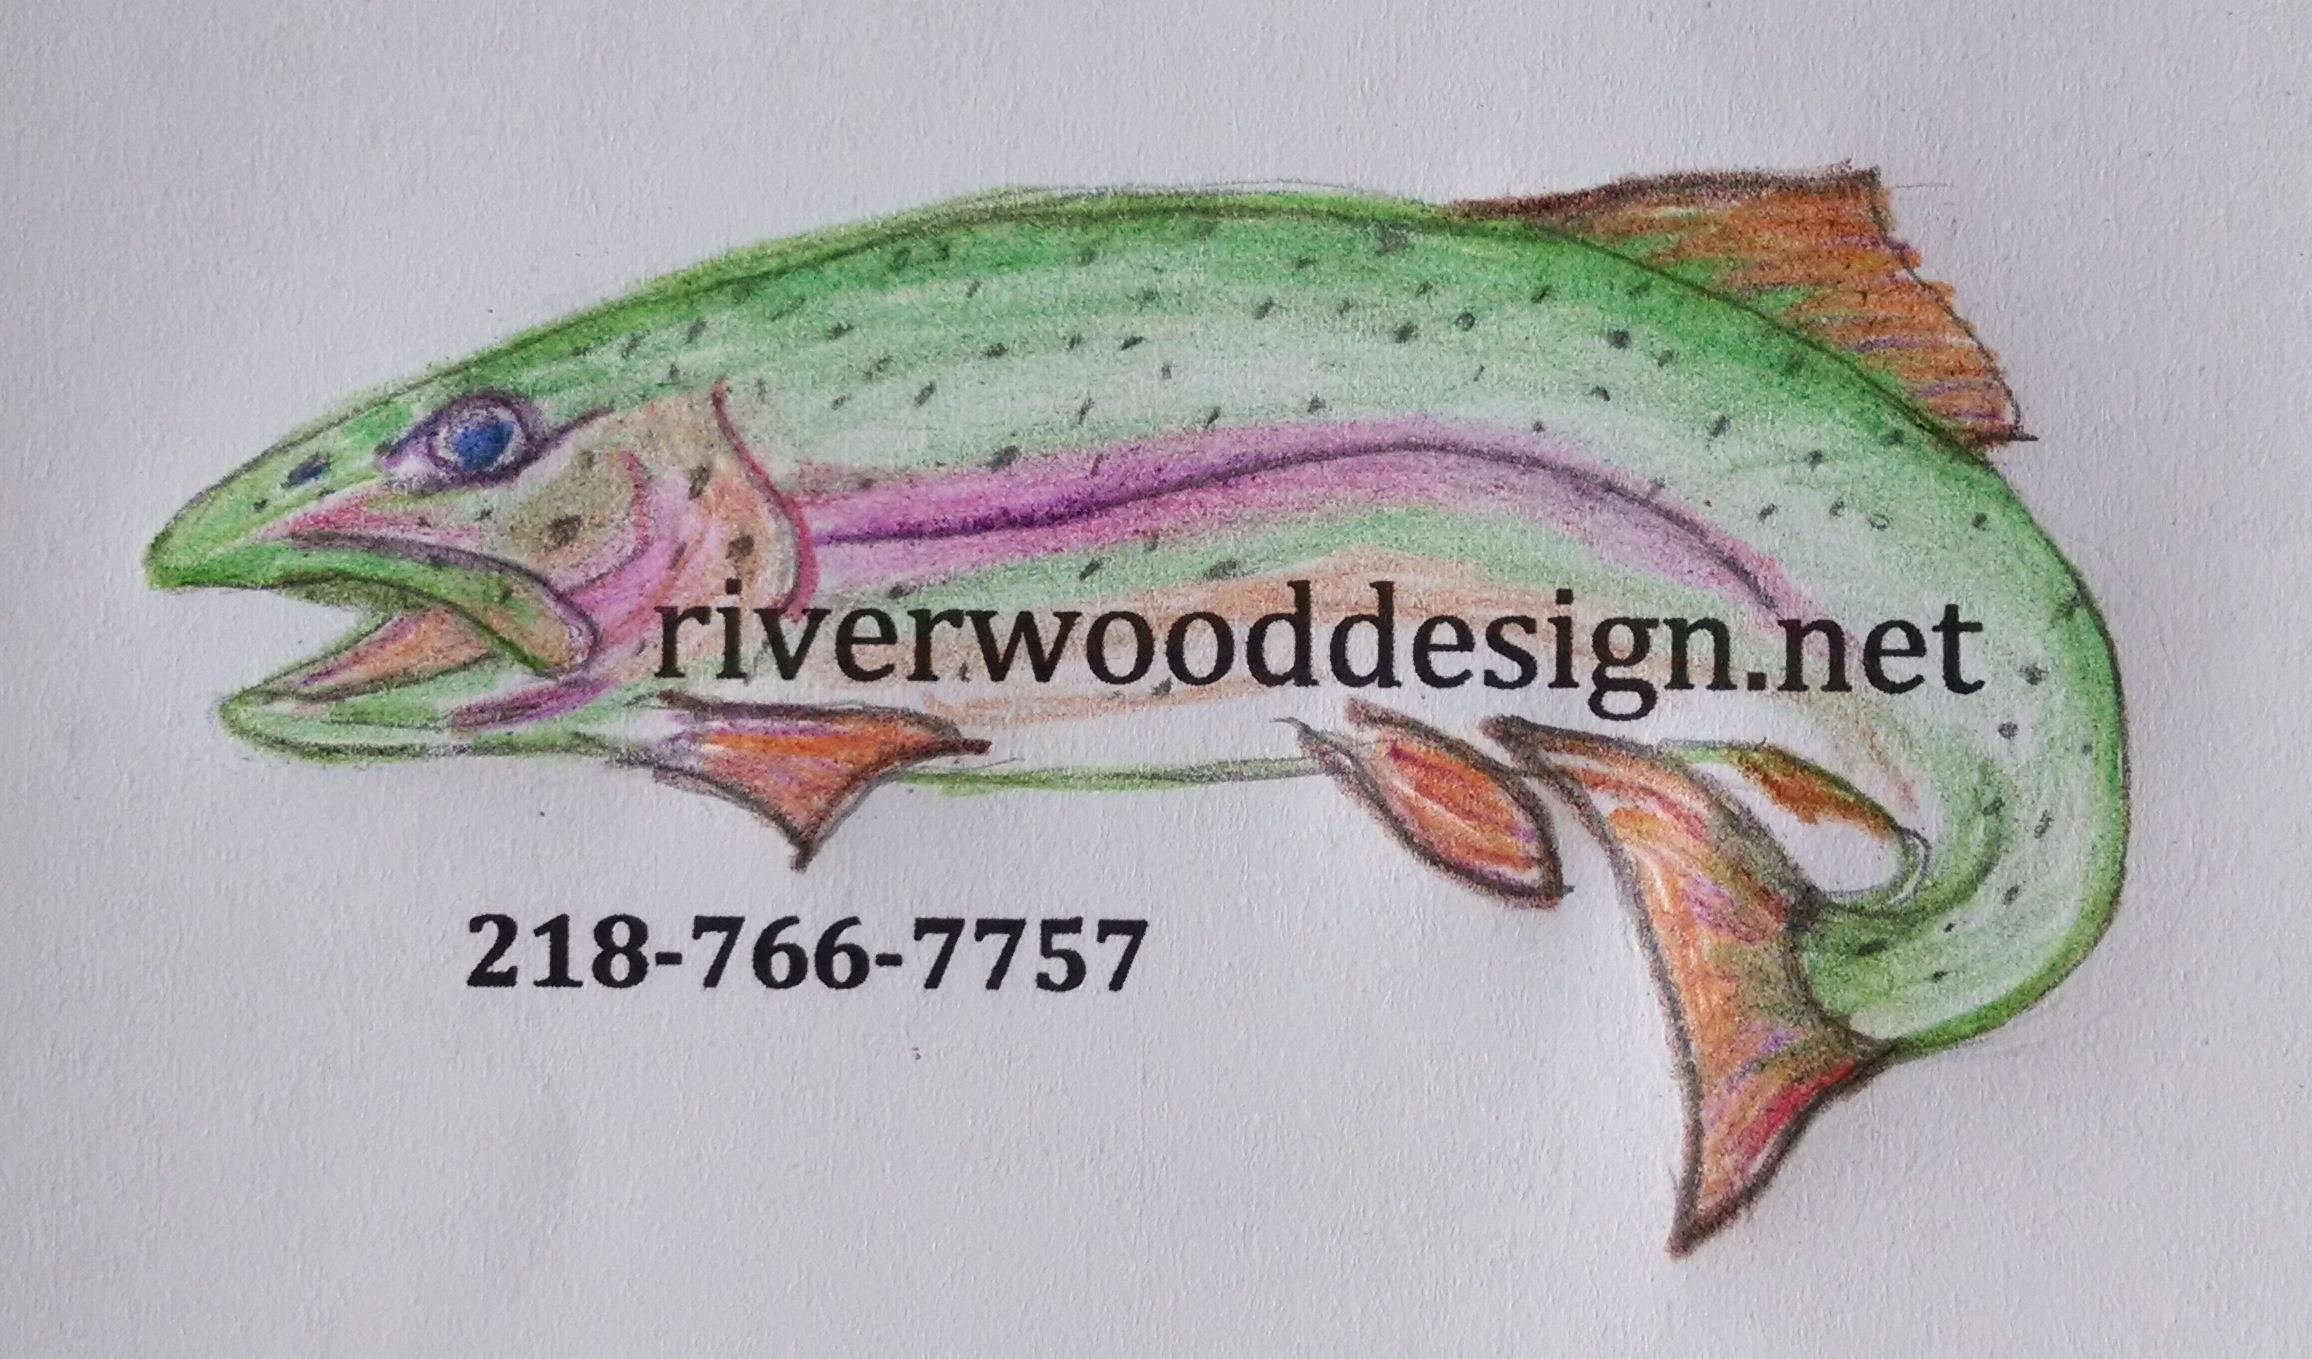 Riverwood Design